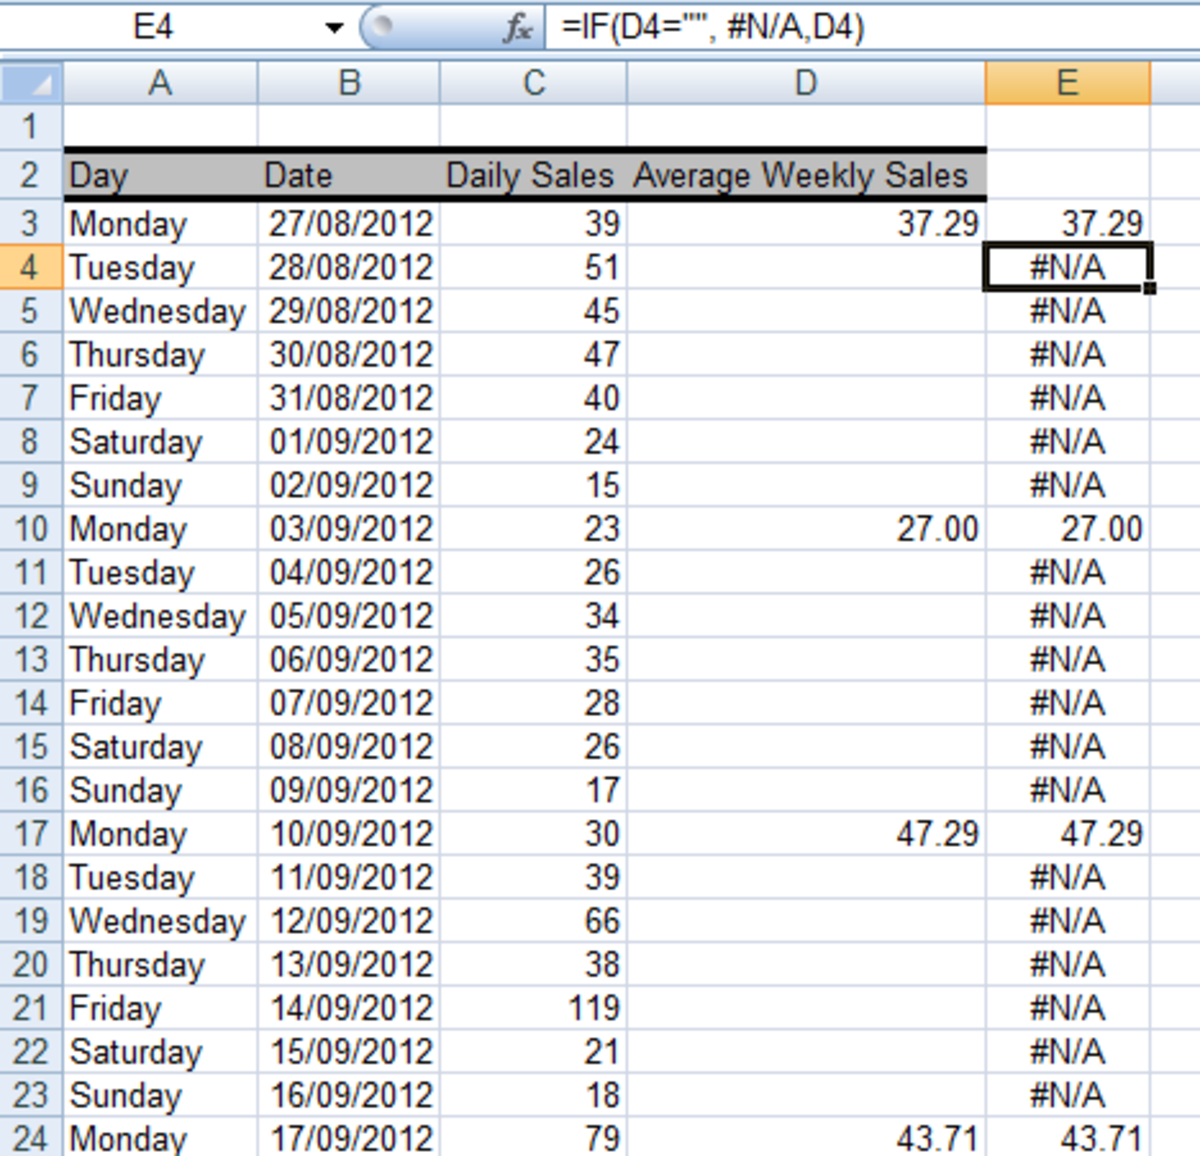 Ediblewildsus  Sweet How To Get Excel  And  To Ignore Empty Cells In A Chart Or  With Outstanding Using The If Function In A Formula To Convert Empty Cells To Na With Easy On The Eye Excel Formulas Percent Increase Also Tvm Calculator Excel In Addition Wedding Budget Excel Sheet And Excel Logistic As Well As Excel Formula Weekday Additionally Vehicle Mileage Log Excel From Turbofuturecom With Ediblewildsus  Outstanding How To Get Excel  And  To Ignore Empty Cells In A Chart Or  With Easy On The Eye Using The If Function In A Formula To Convert Empty Cells To Na And Sweet Excel Formulas Percent Increase Also Tvm Calculator Excel In Addition Wedding Budget Excel Sheet From Turbofuturecom